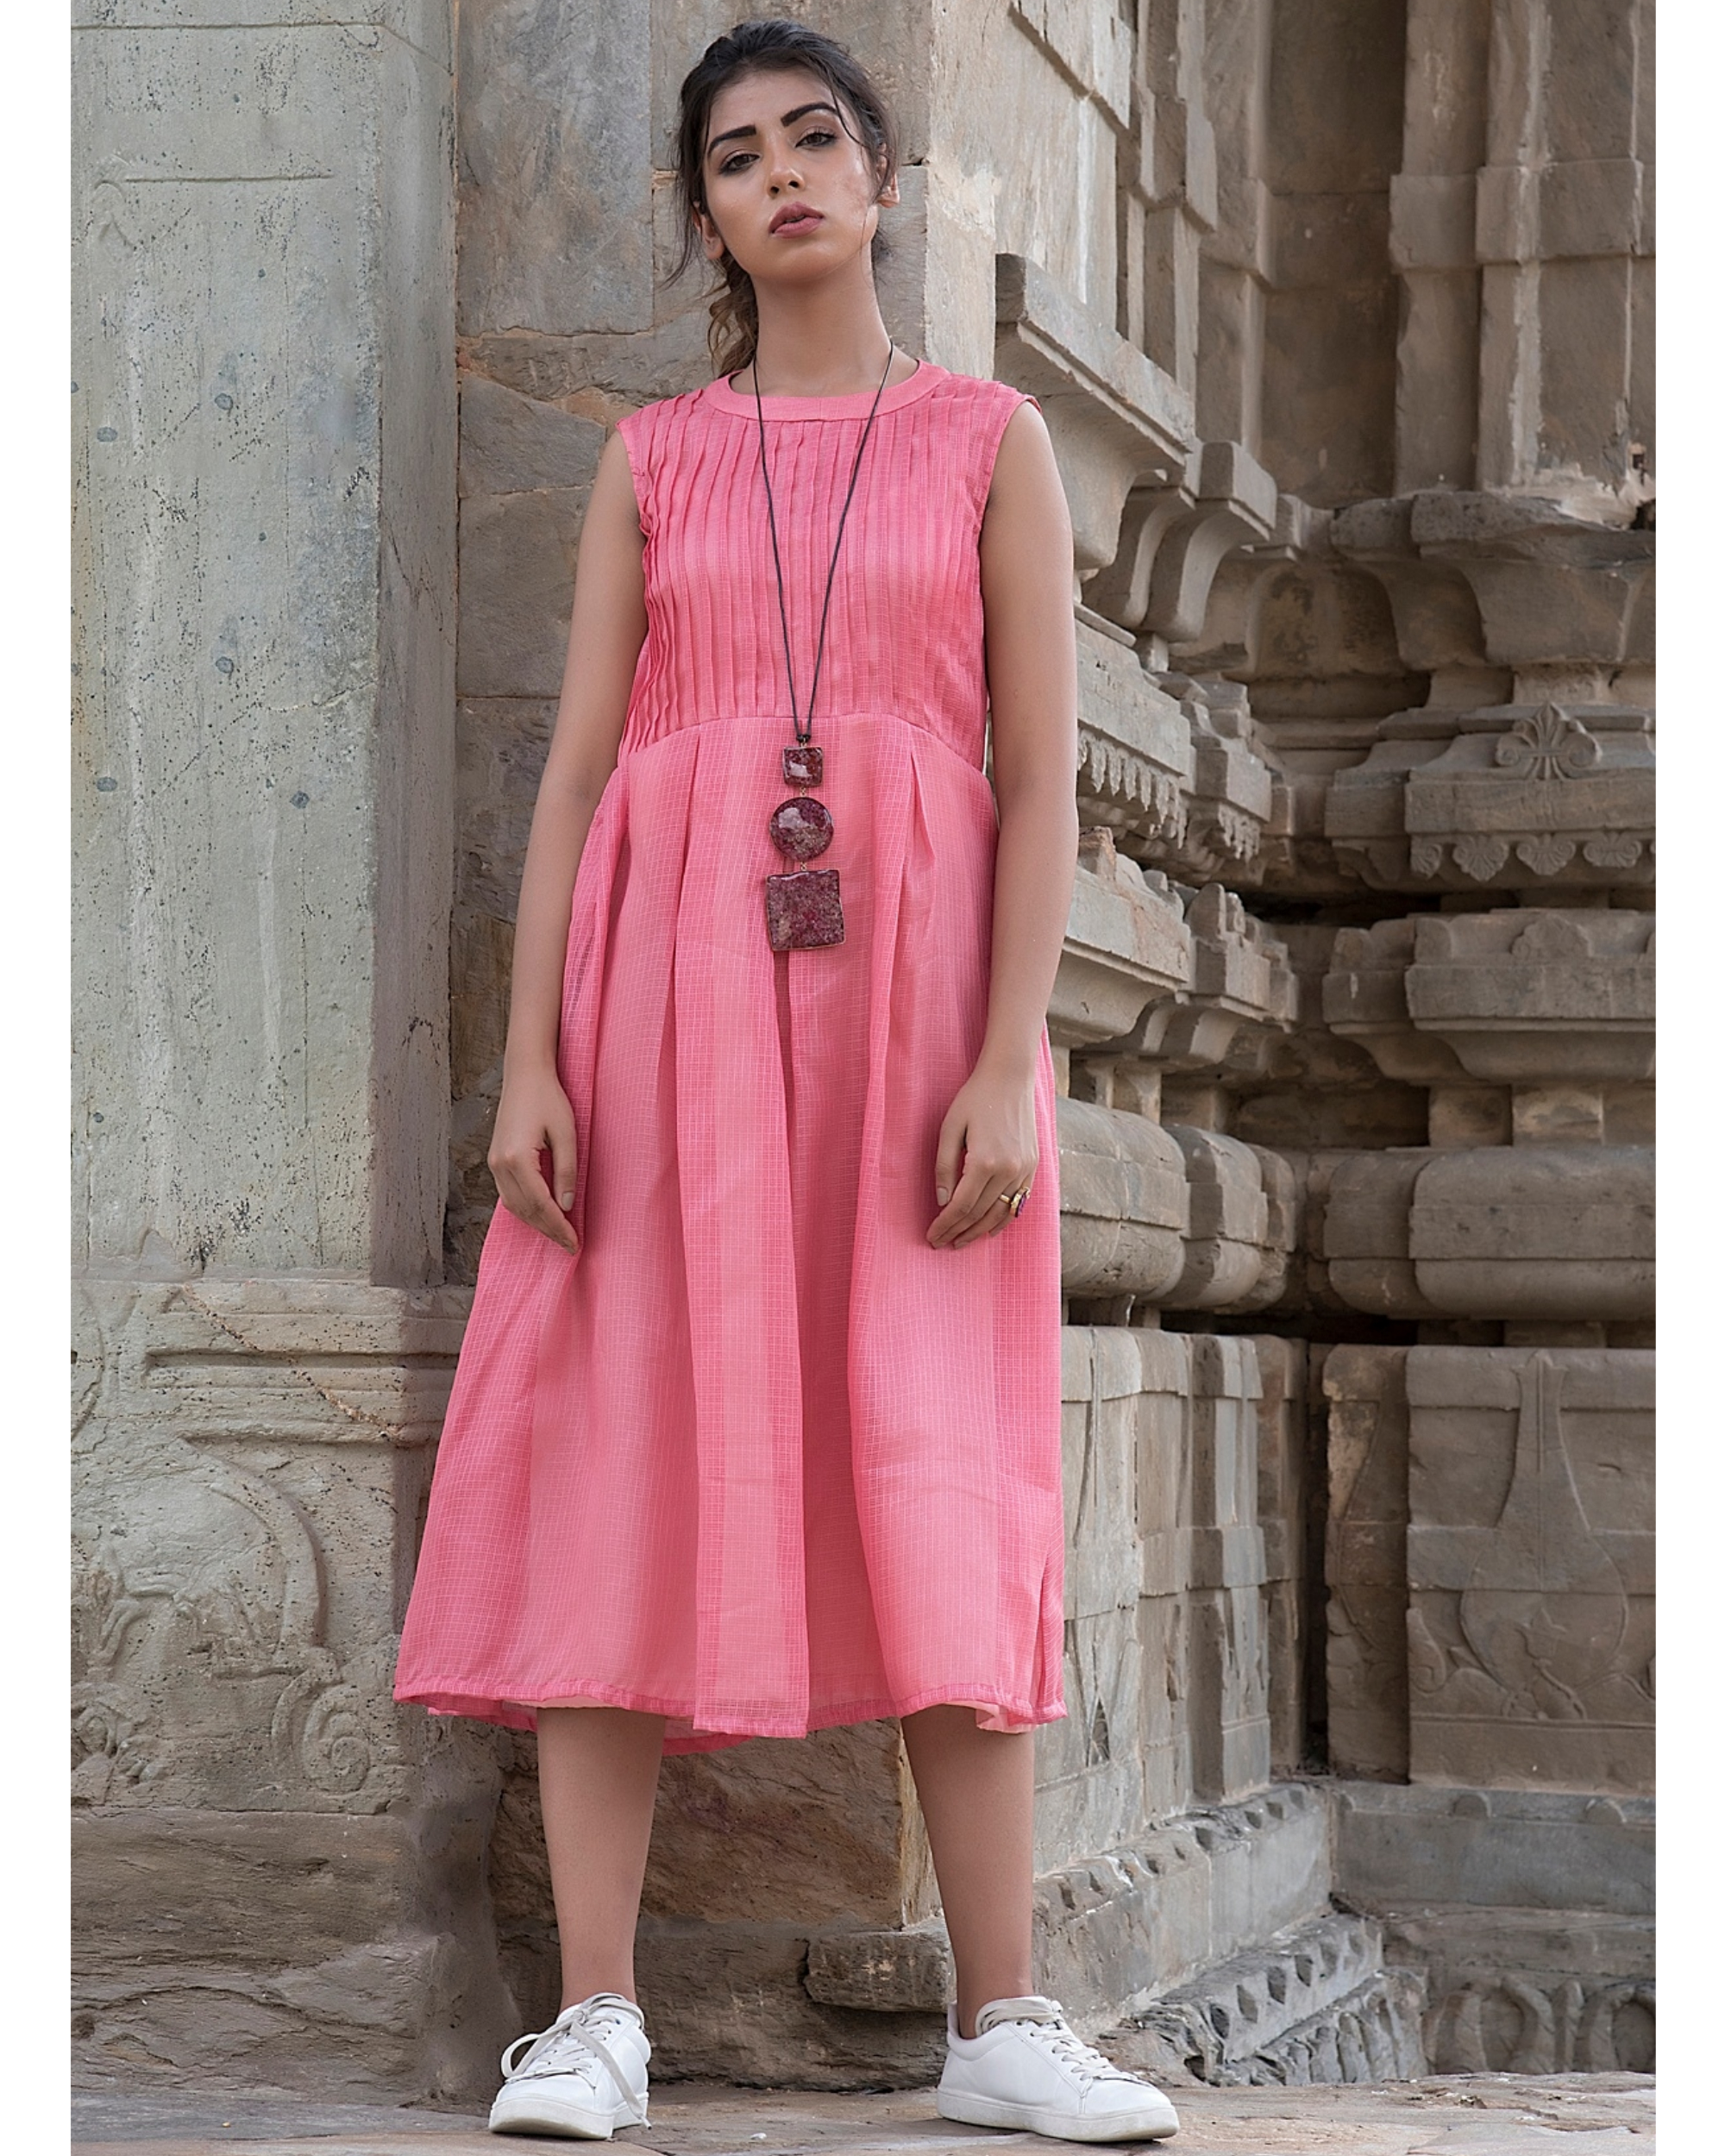 Peach pintexed sleeveless dress